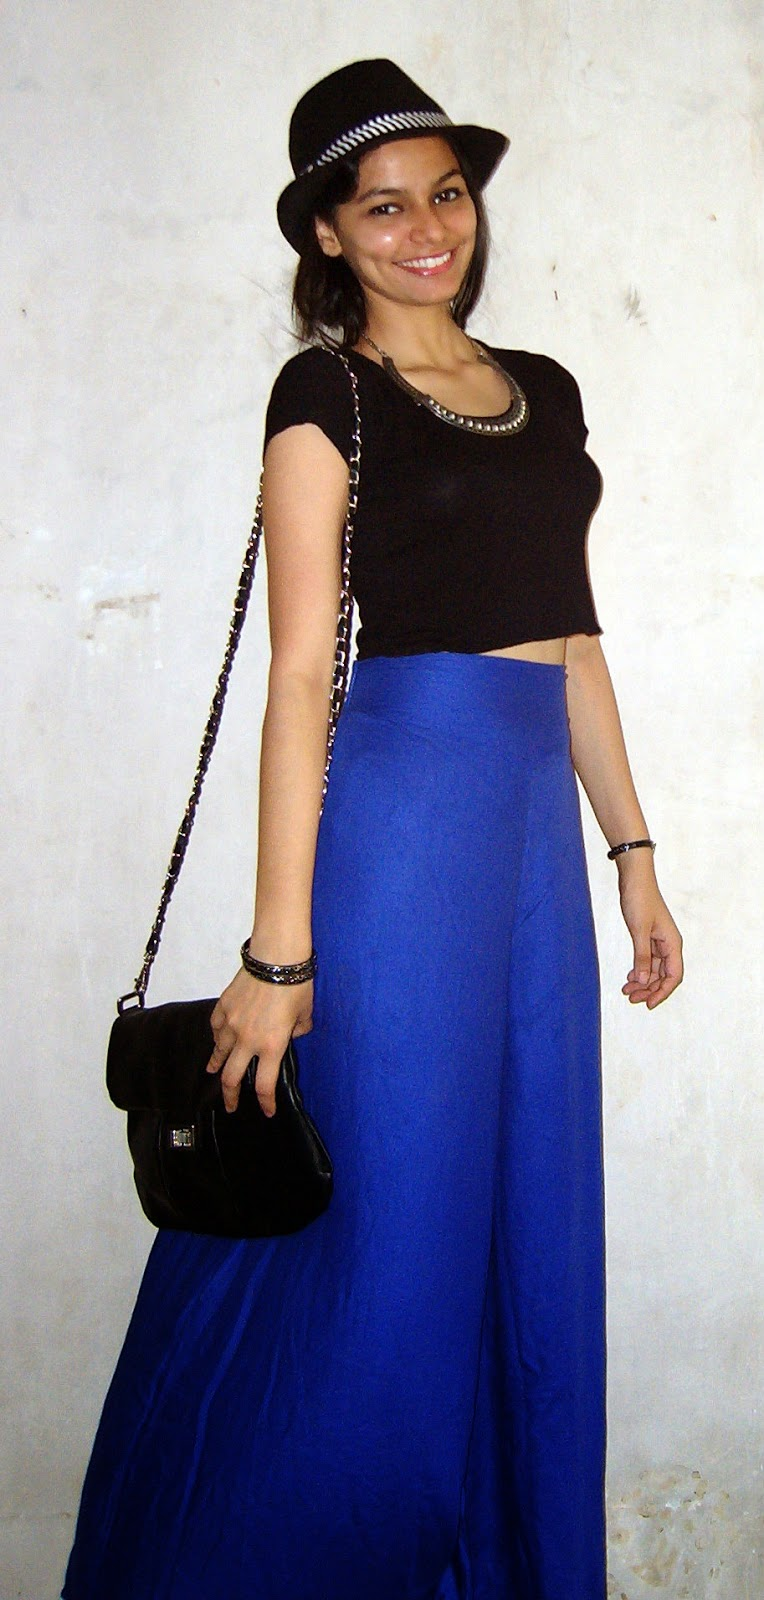 mumbai fashion blogger, palazzo pants, croptop, how to wear a crop top in mumbai, how to dress for summers in mumbai, desi fashion, how to wear hats, black hat style